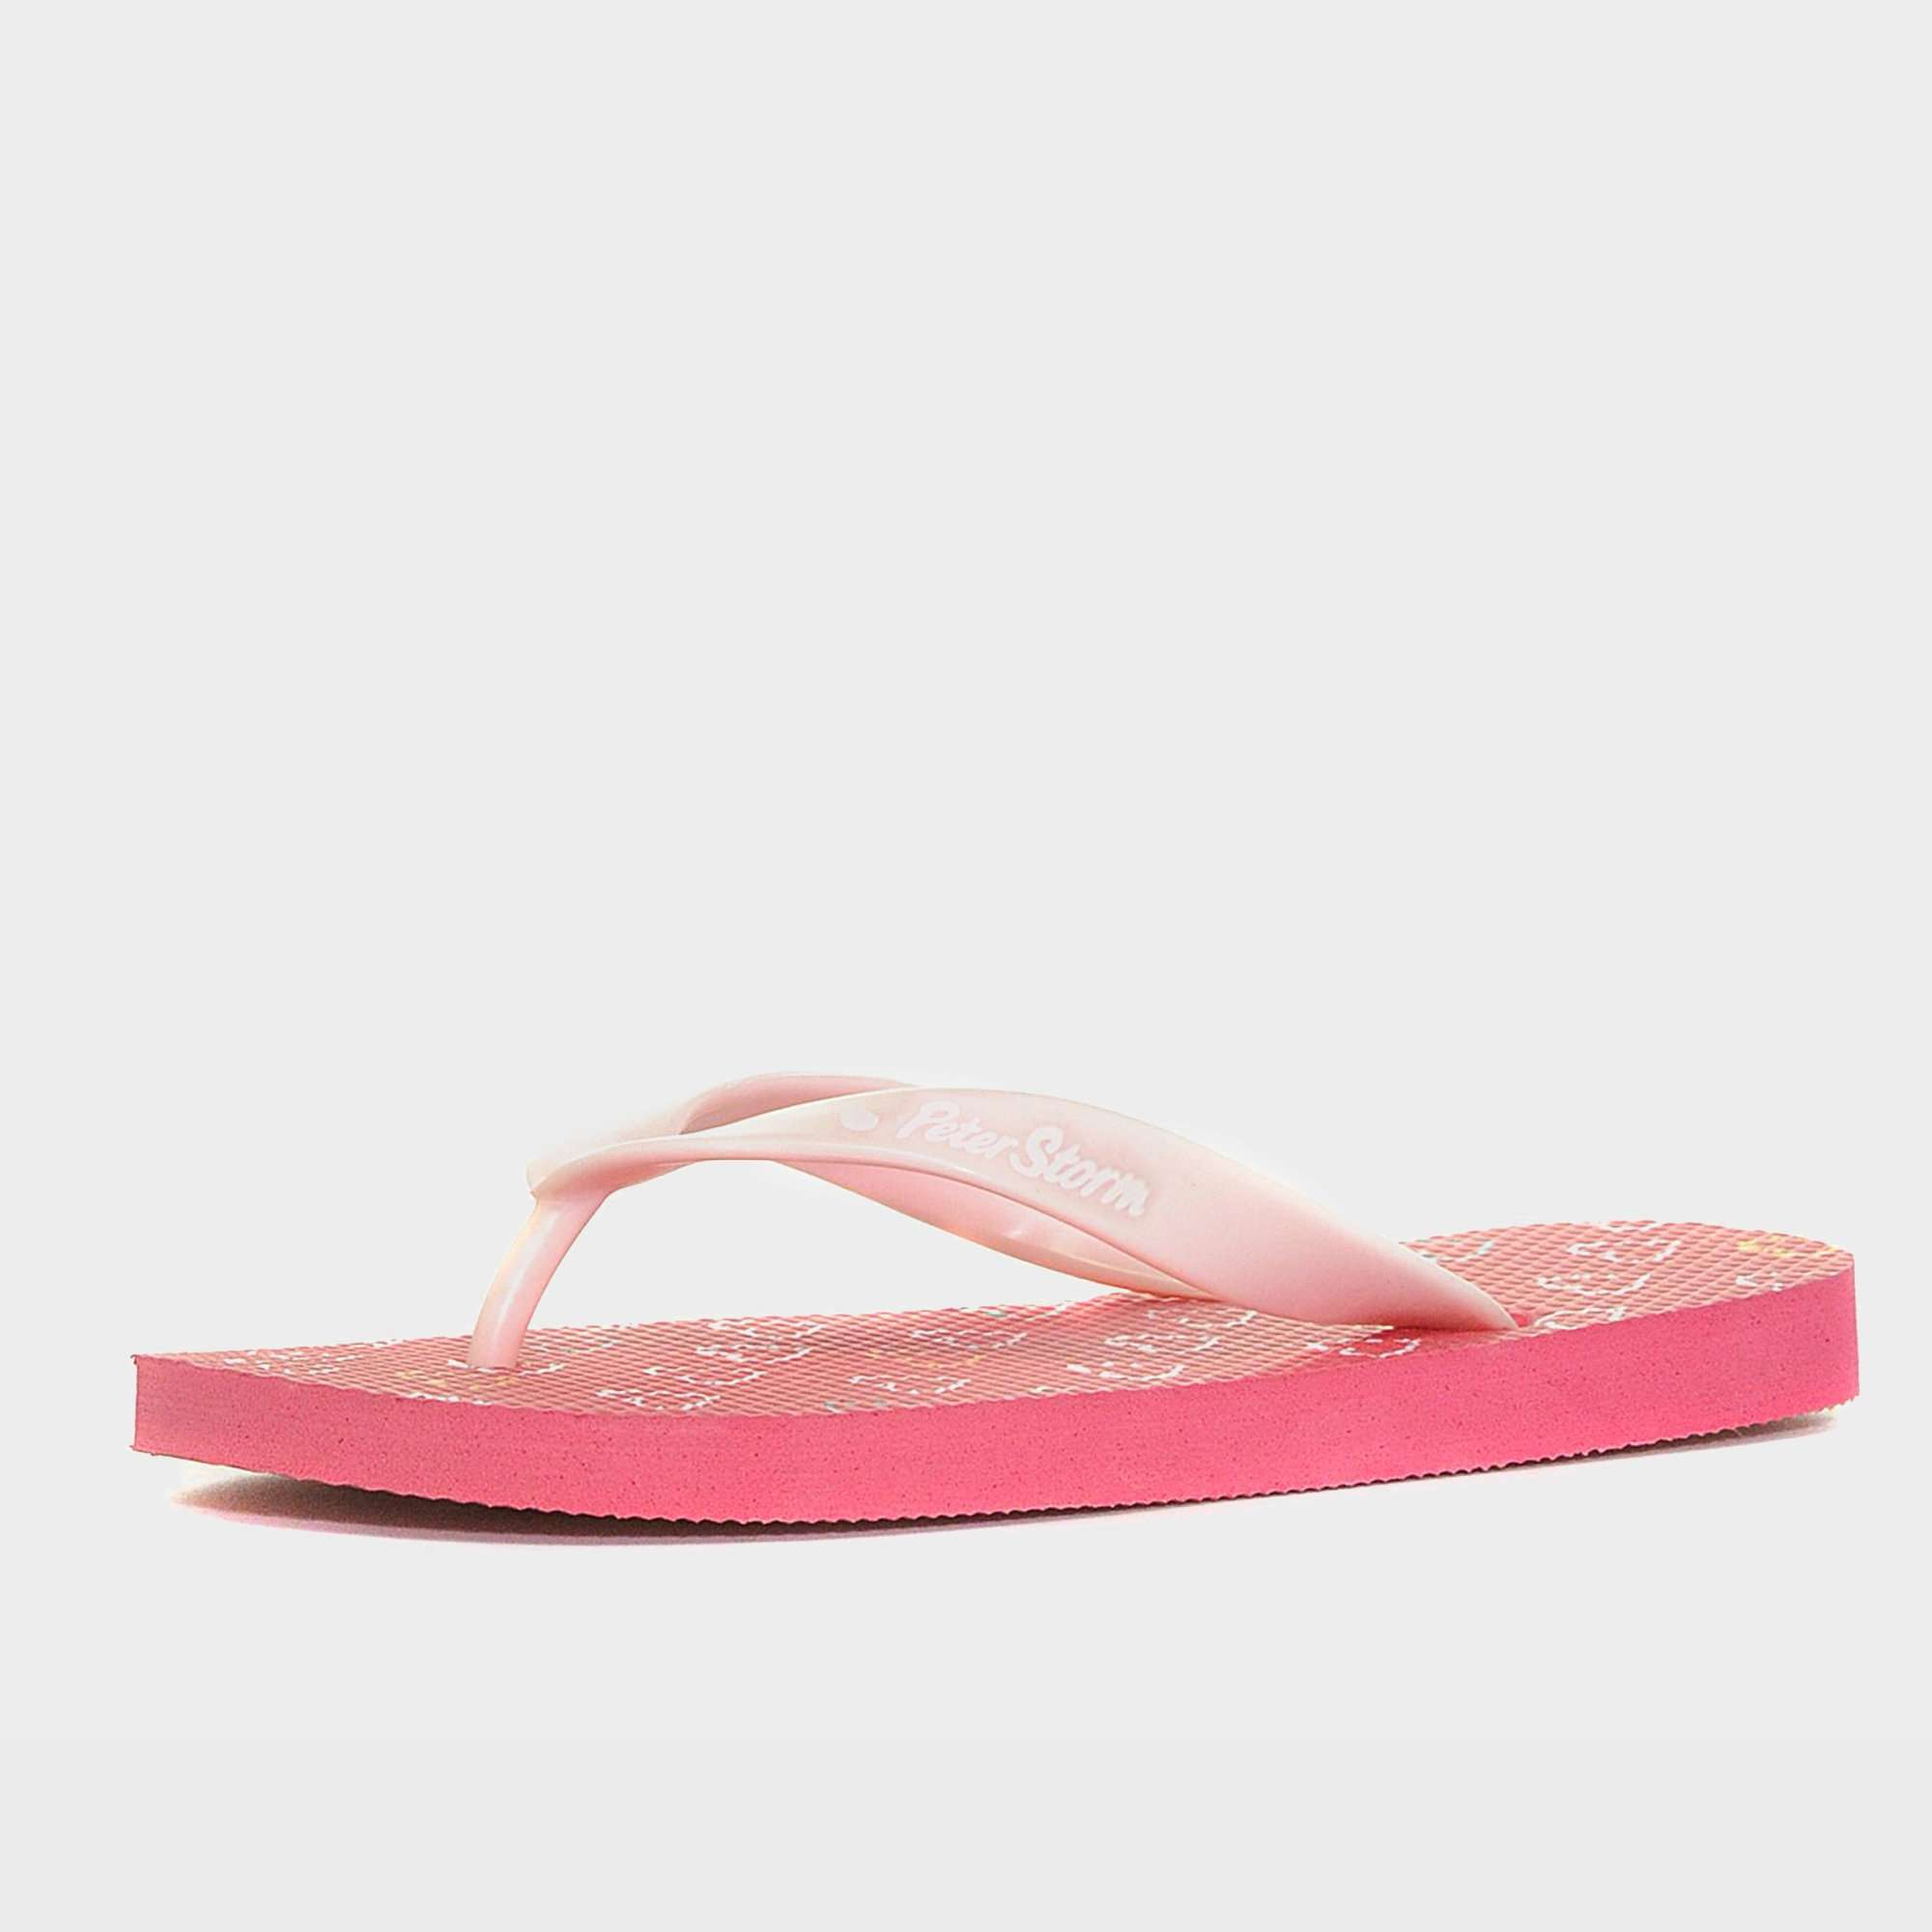 PETER STORM Girls' Love Me Flip Flops